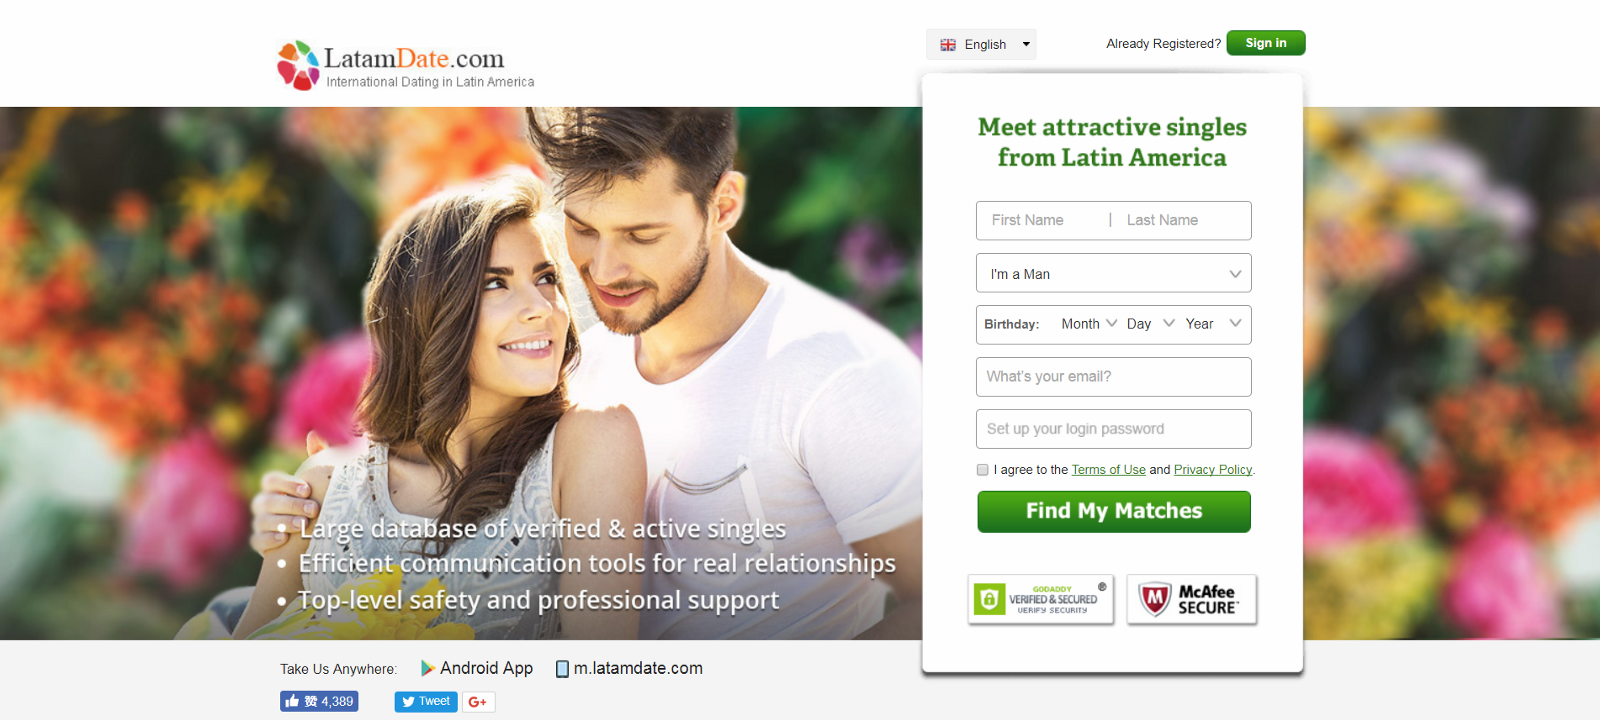 What are the real dating sites